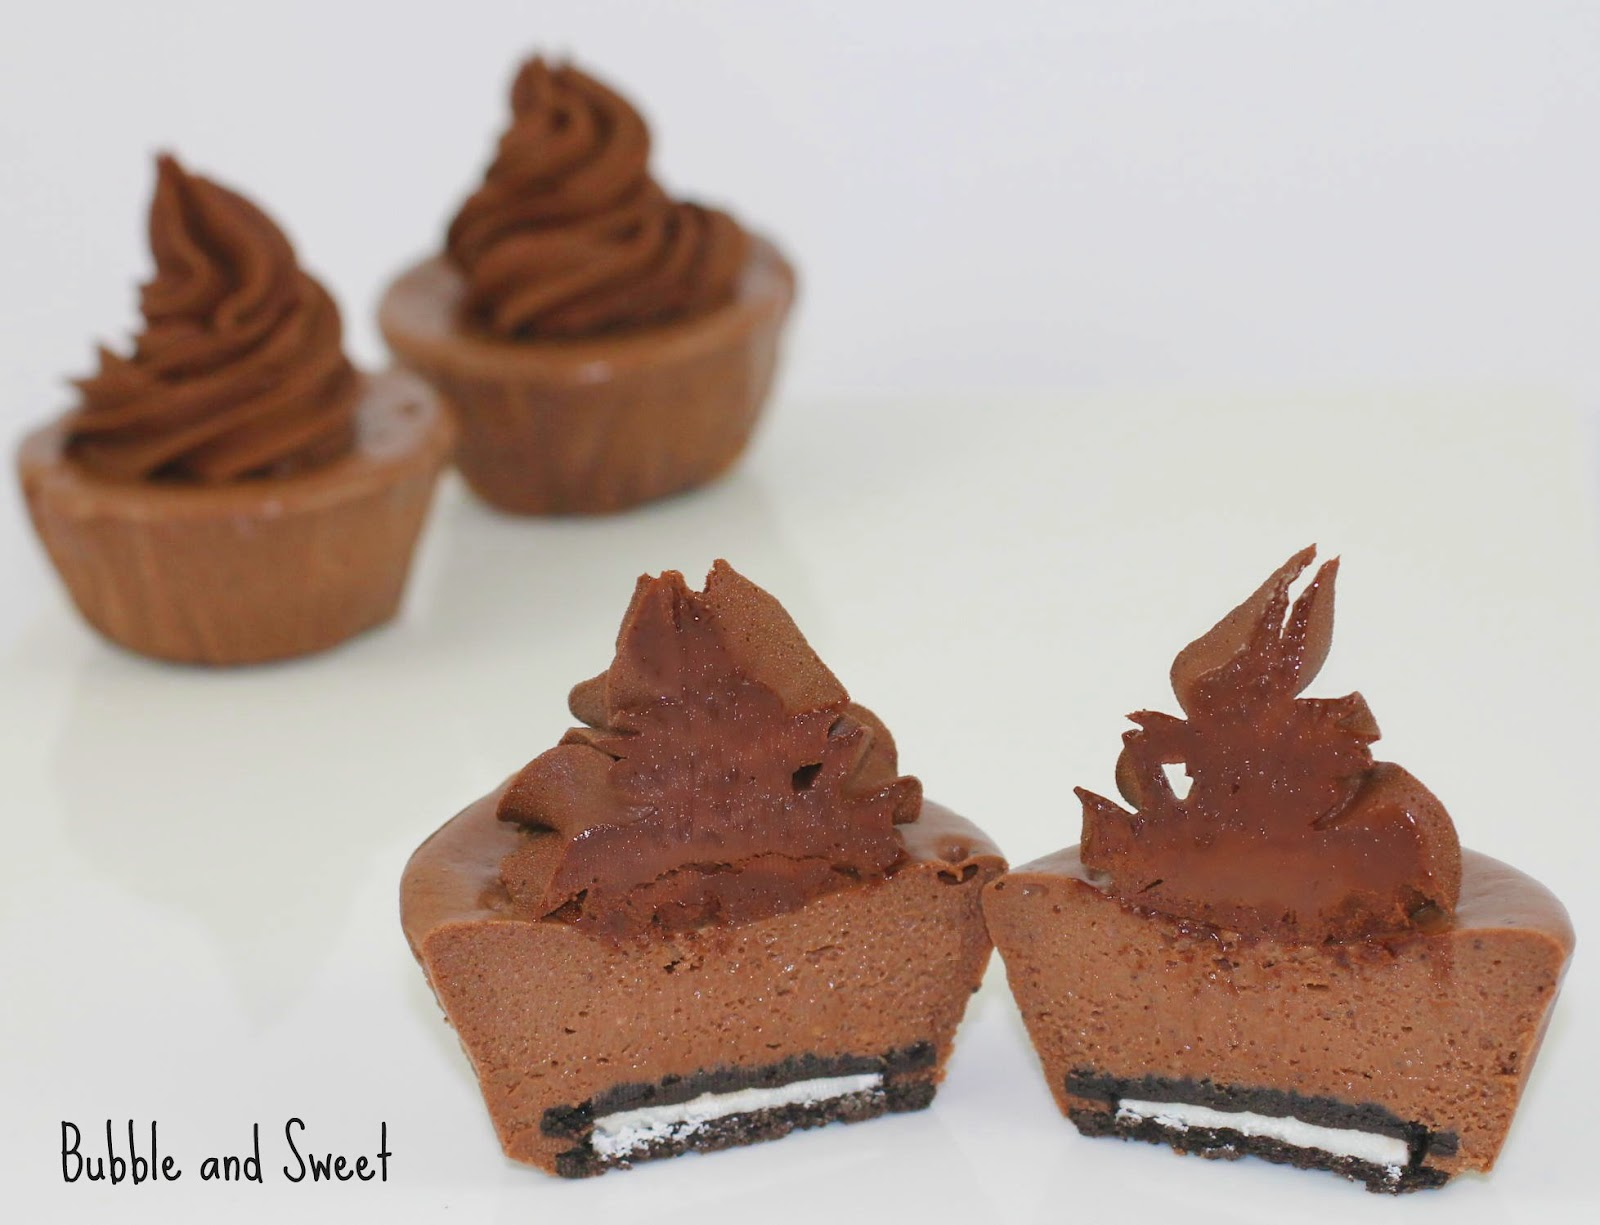 ... favorite things Cheesecakes - Mini Chocolate Cheesecakes with Nutella